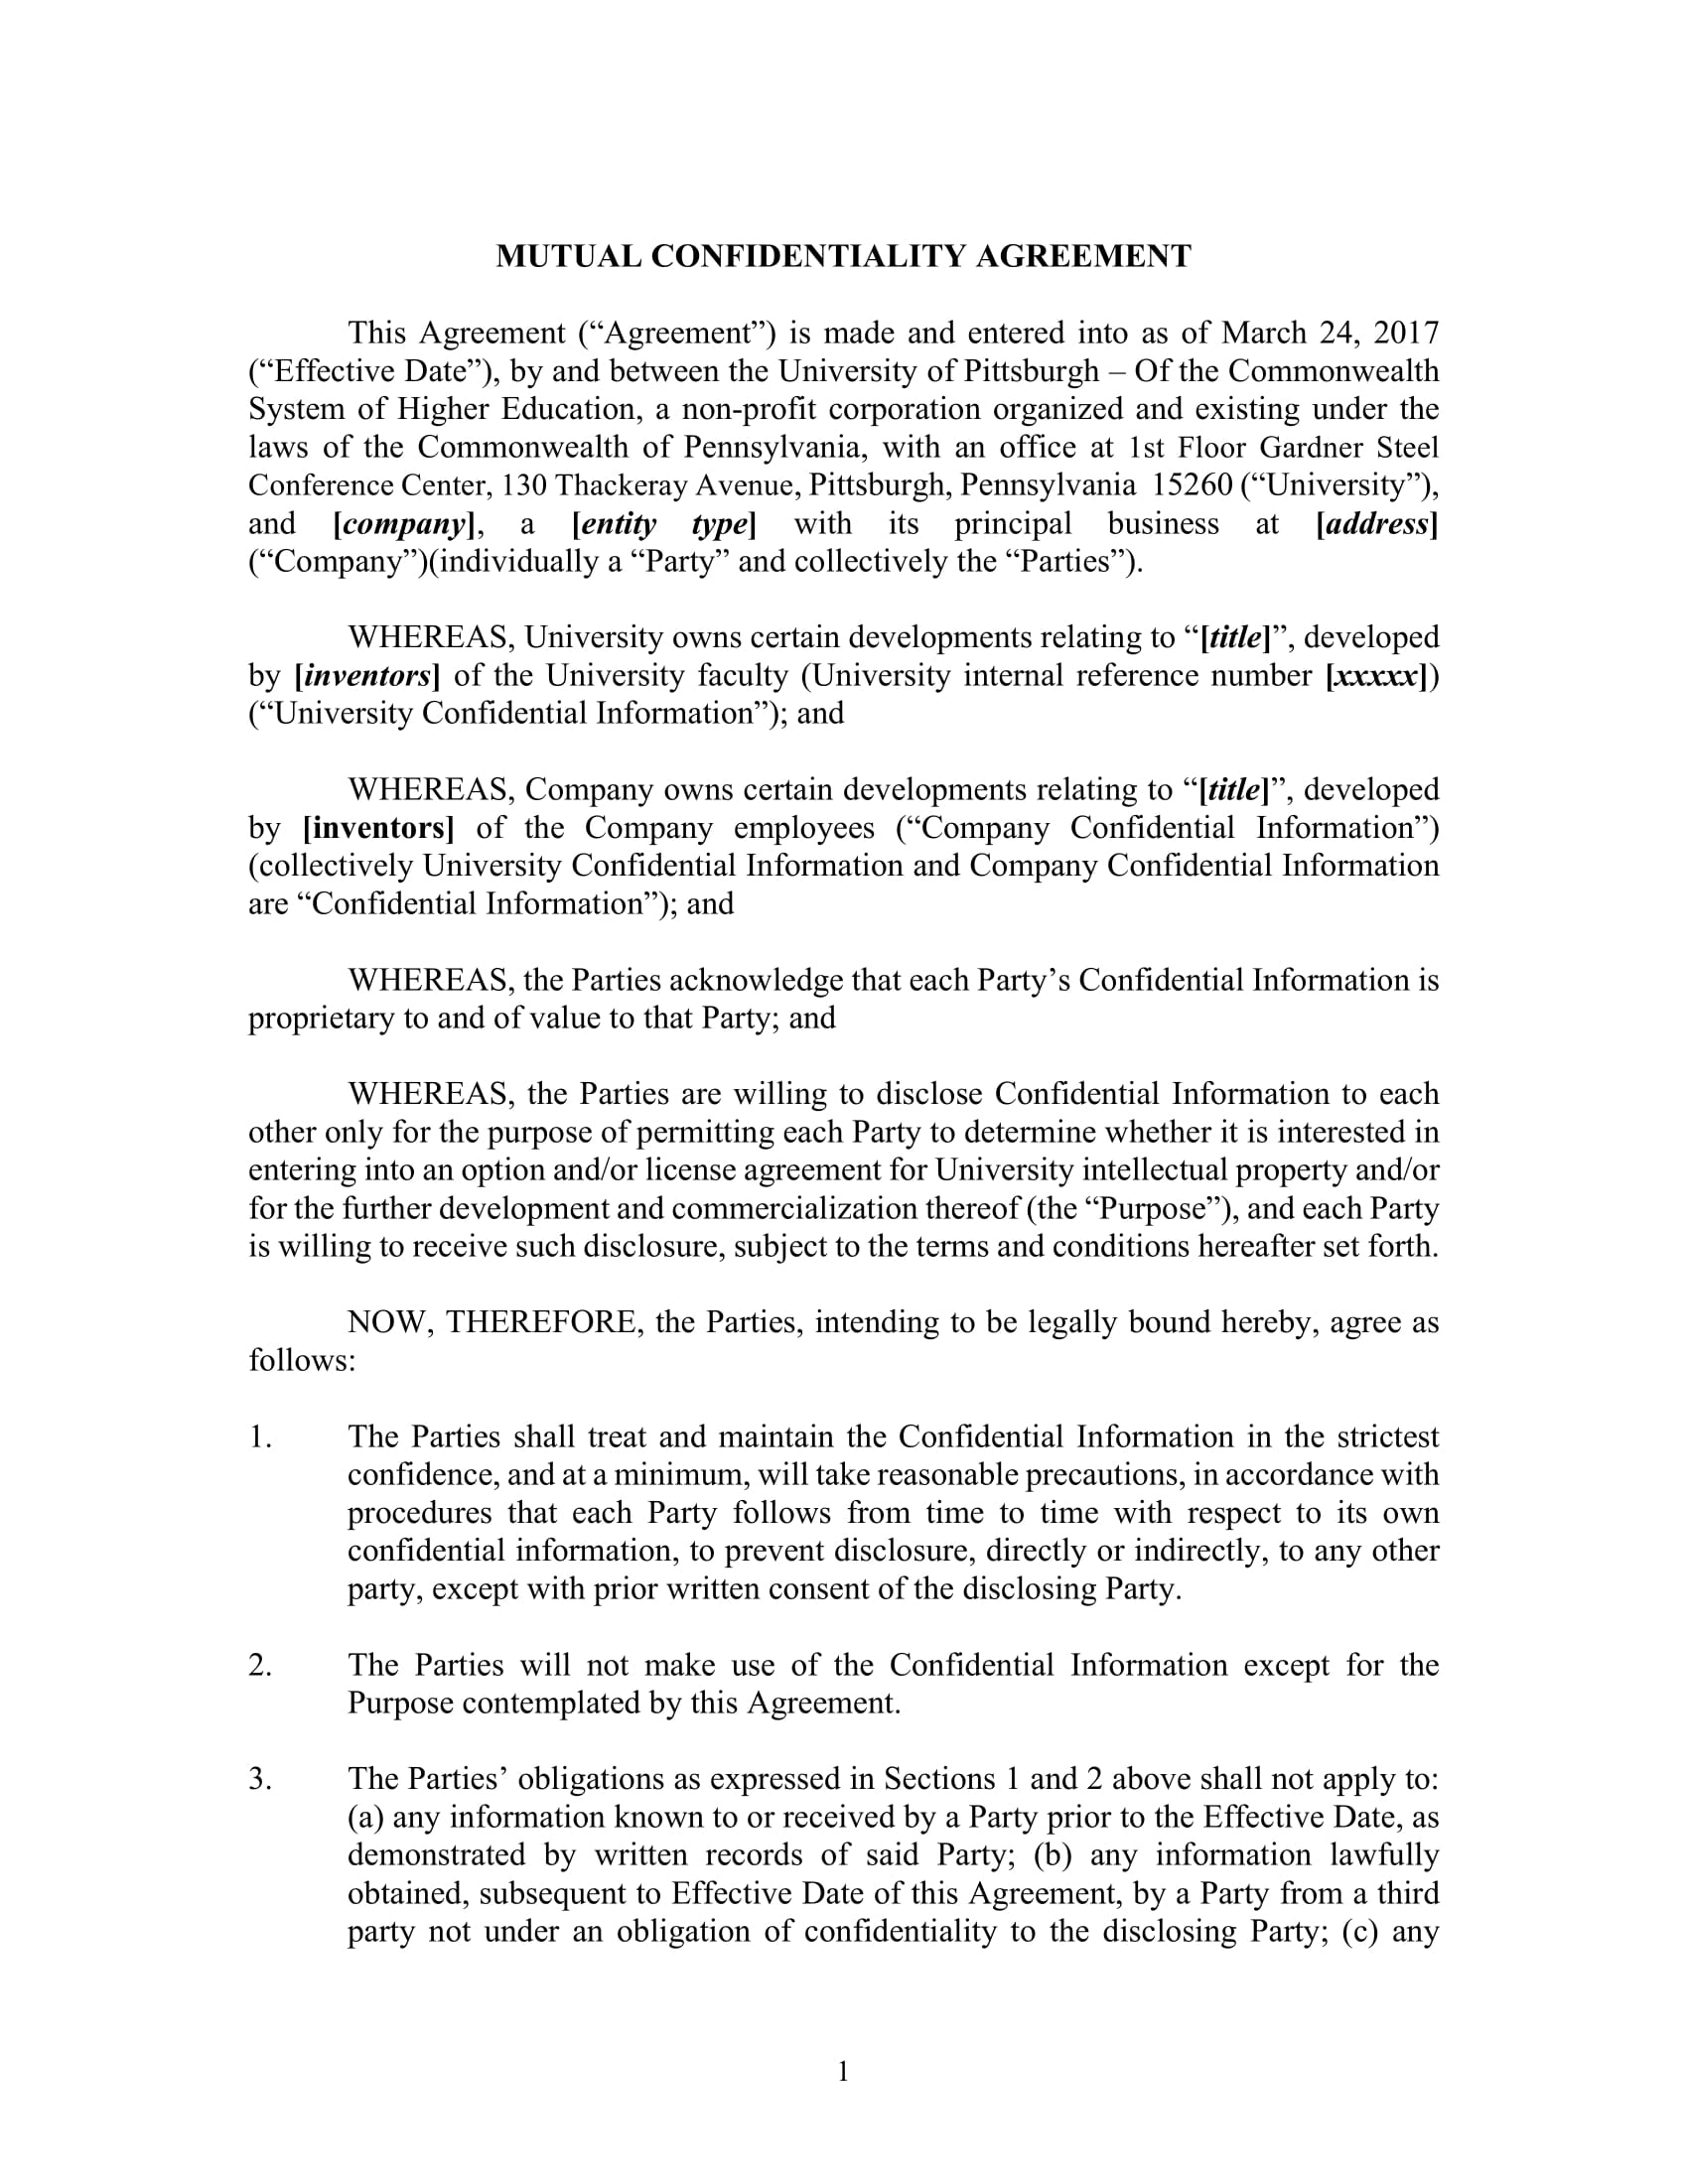 university mutual confidentiality agreement example